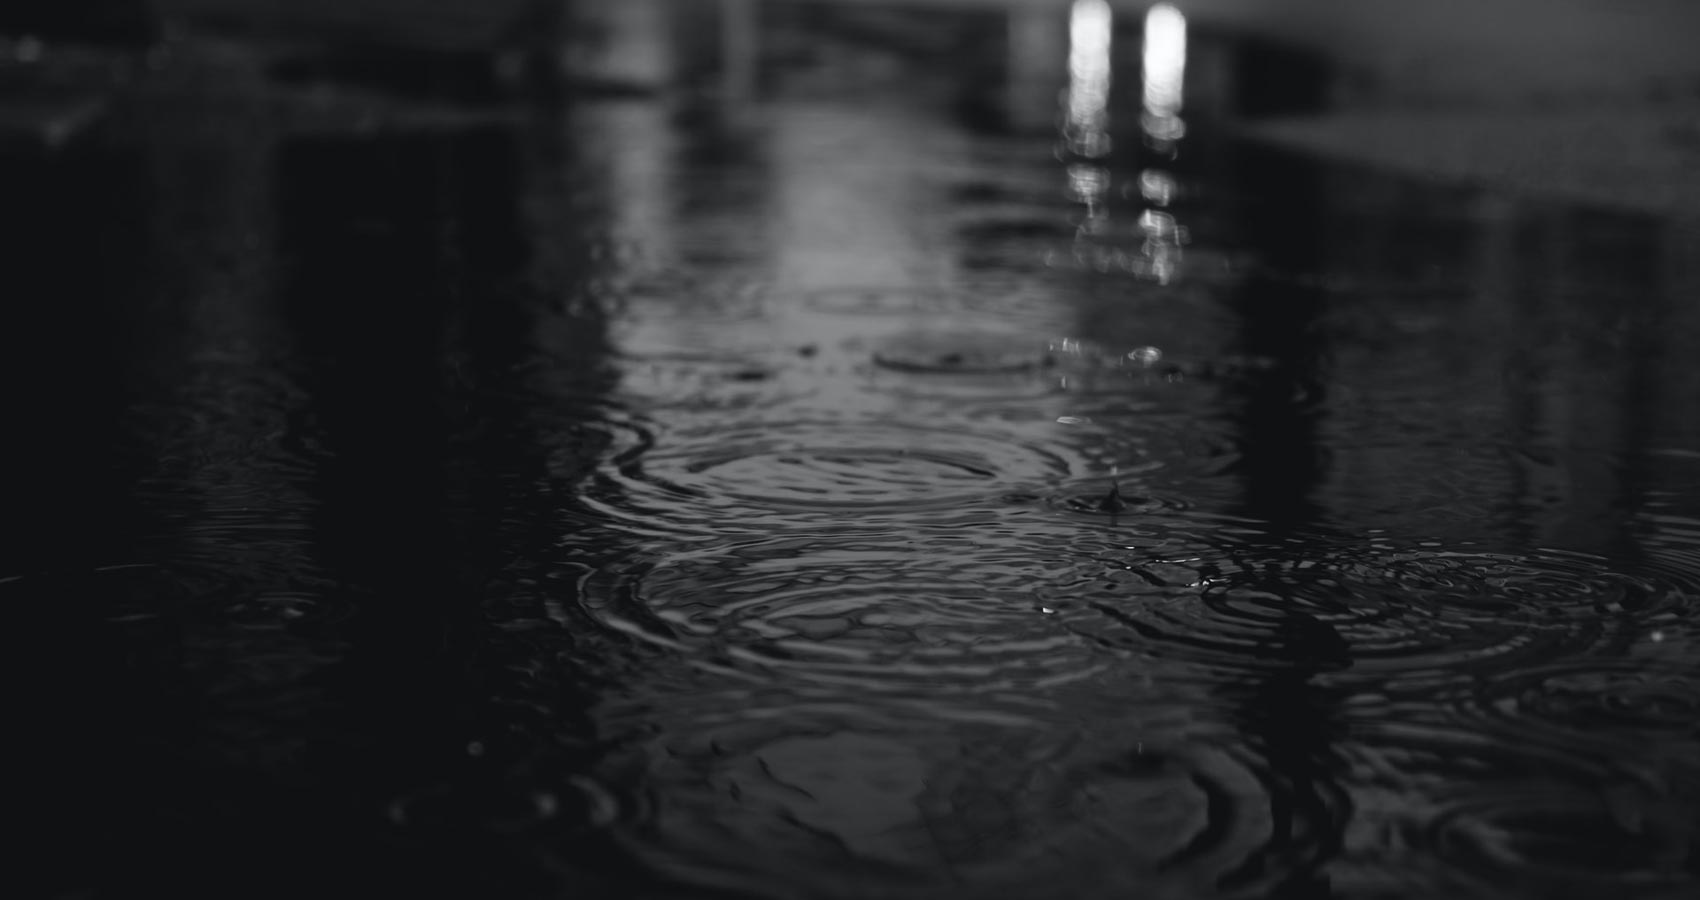 Rain, a poem written by Raj Reader at Spillwords.com